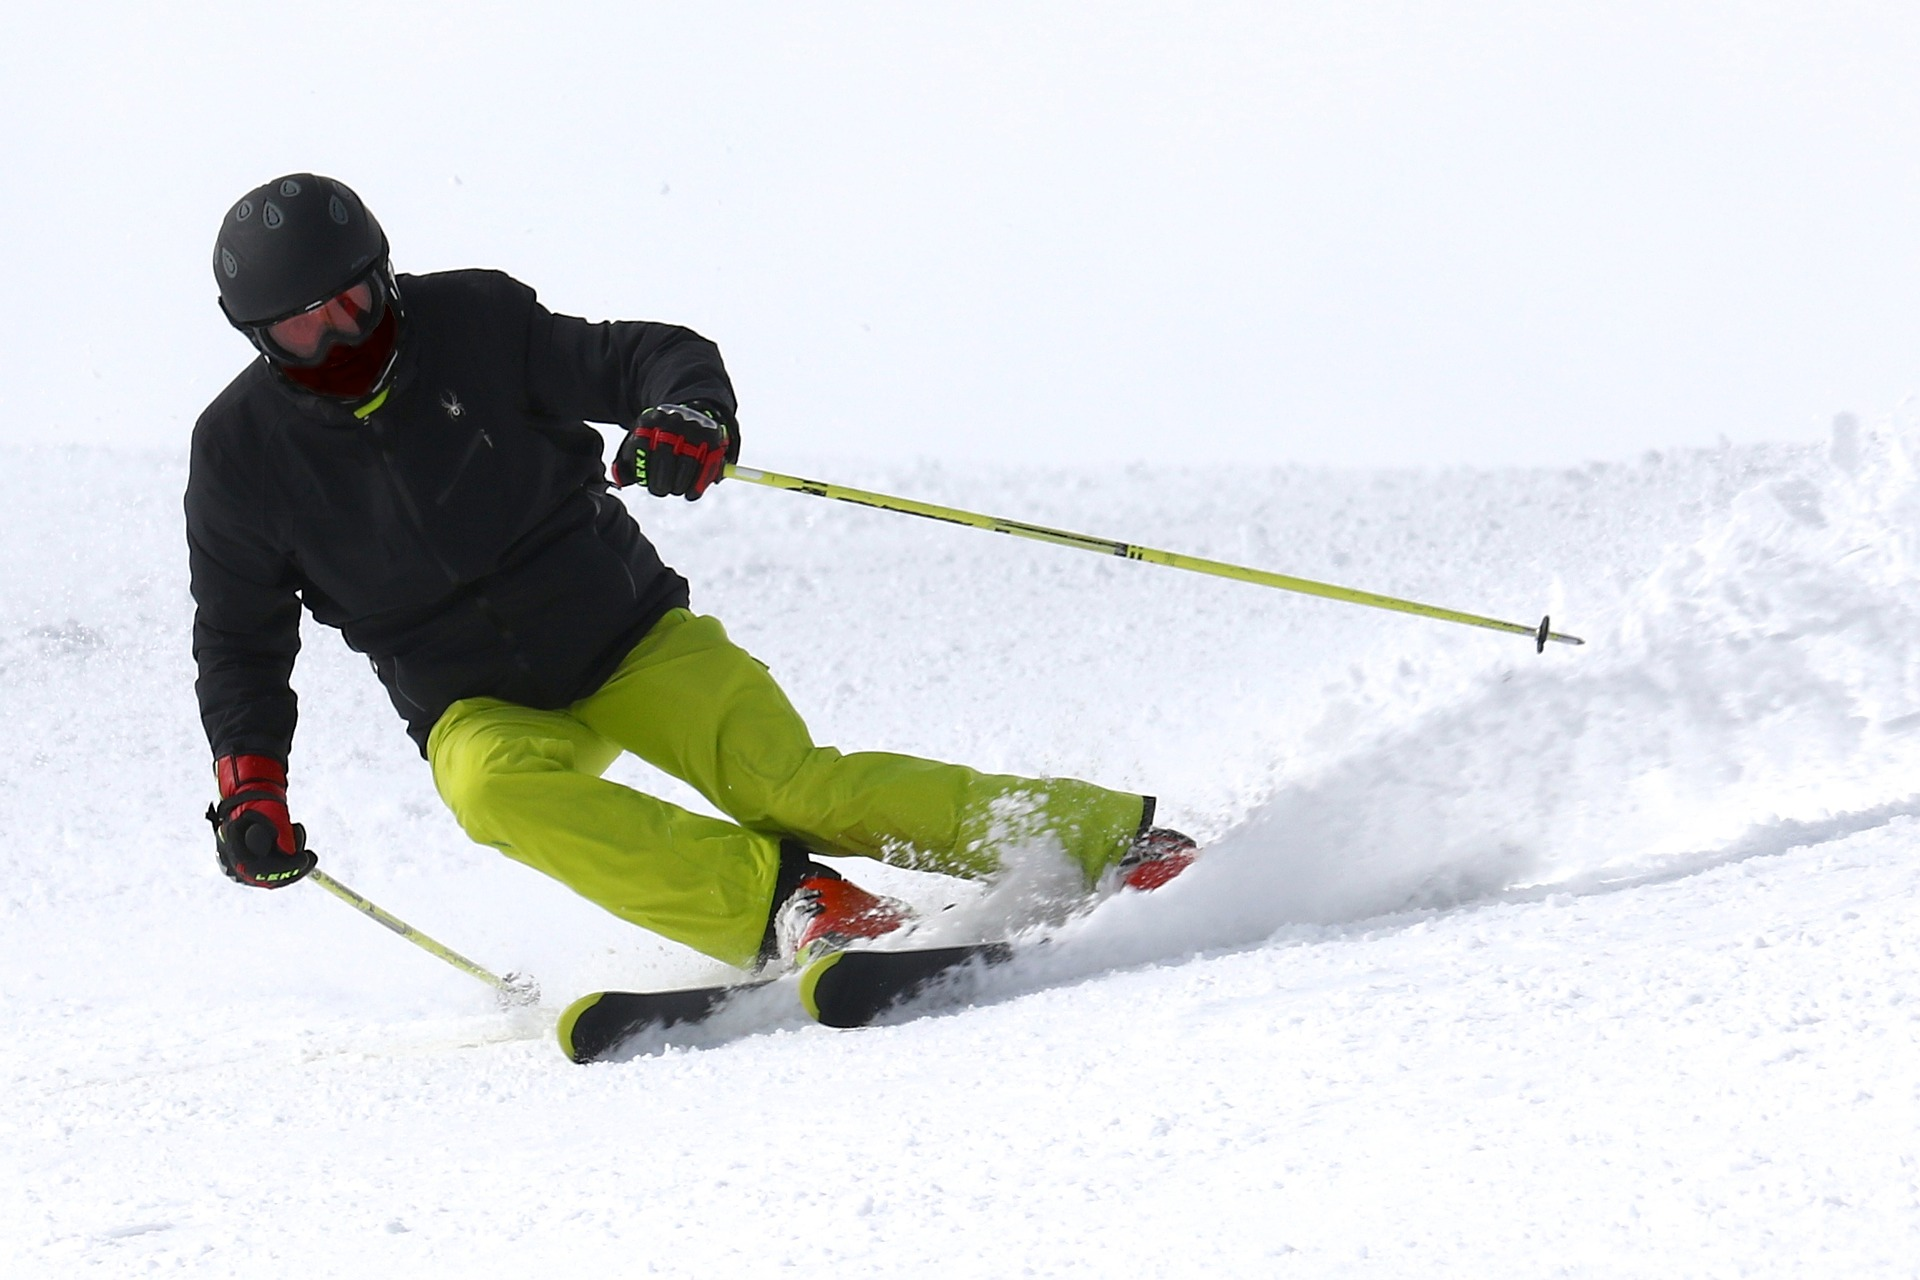 Man skiing in black and yellow